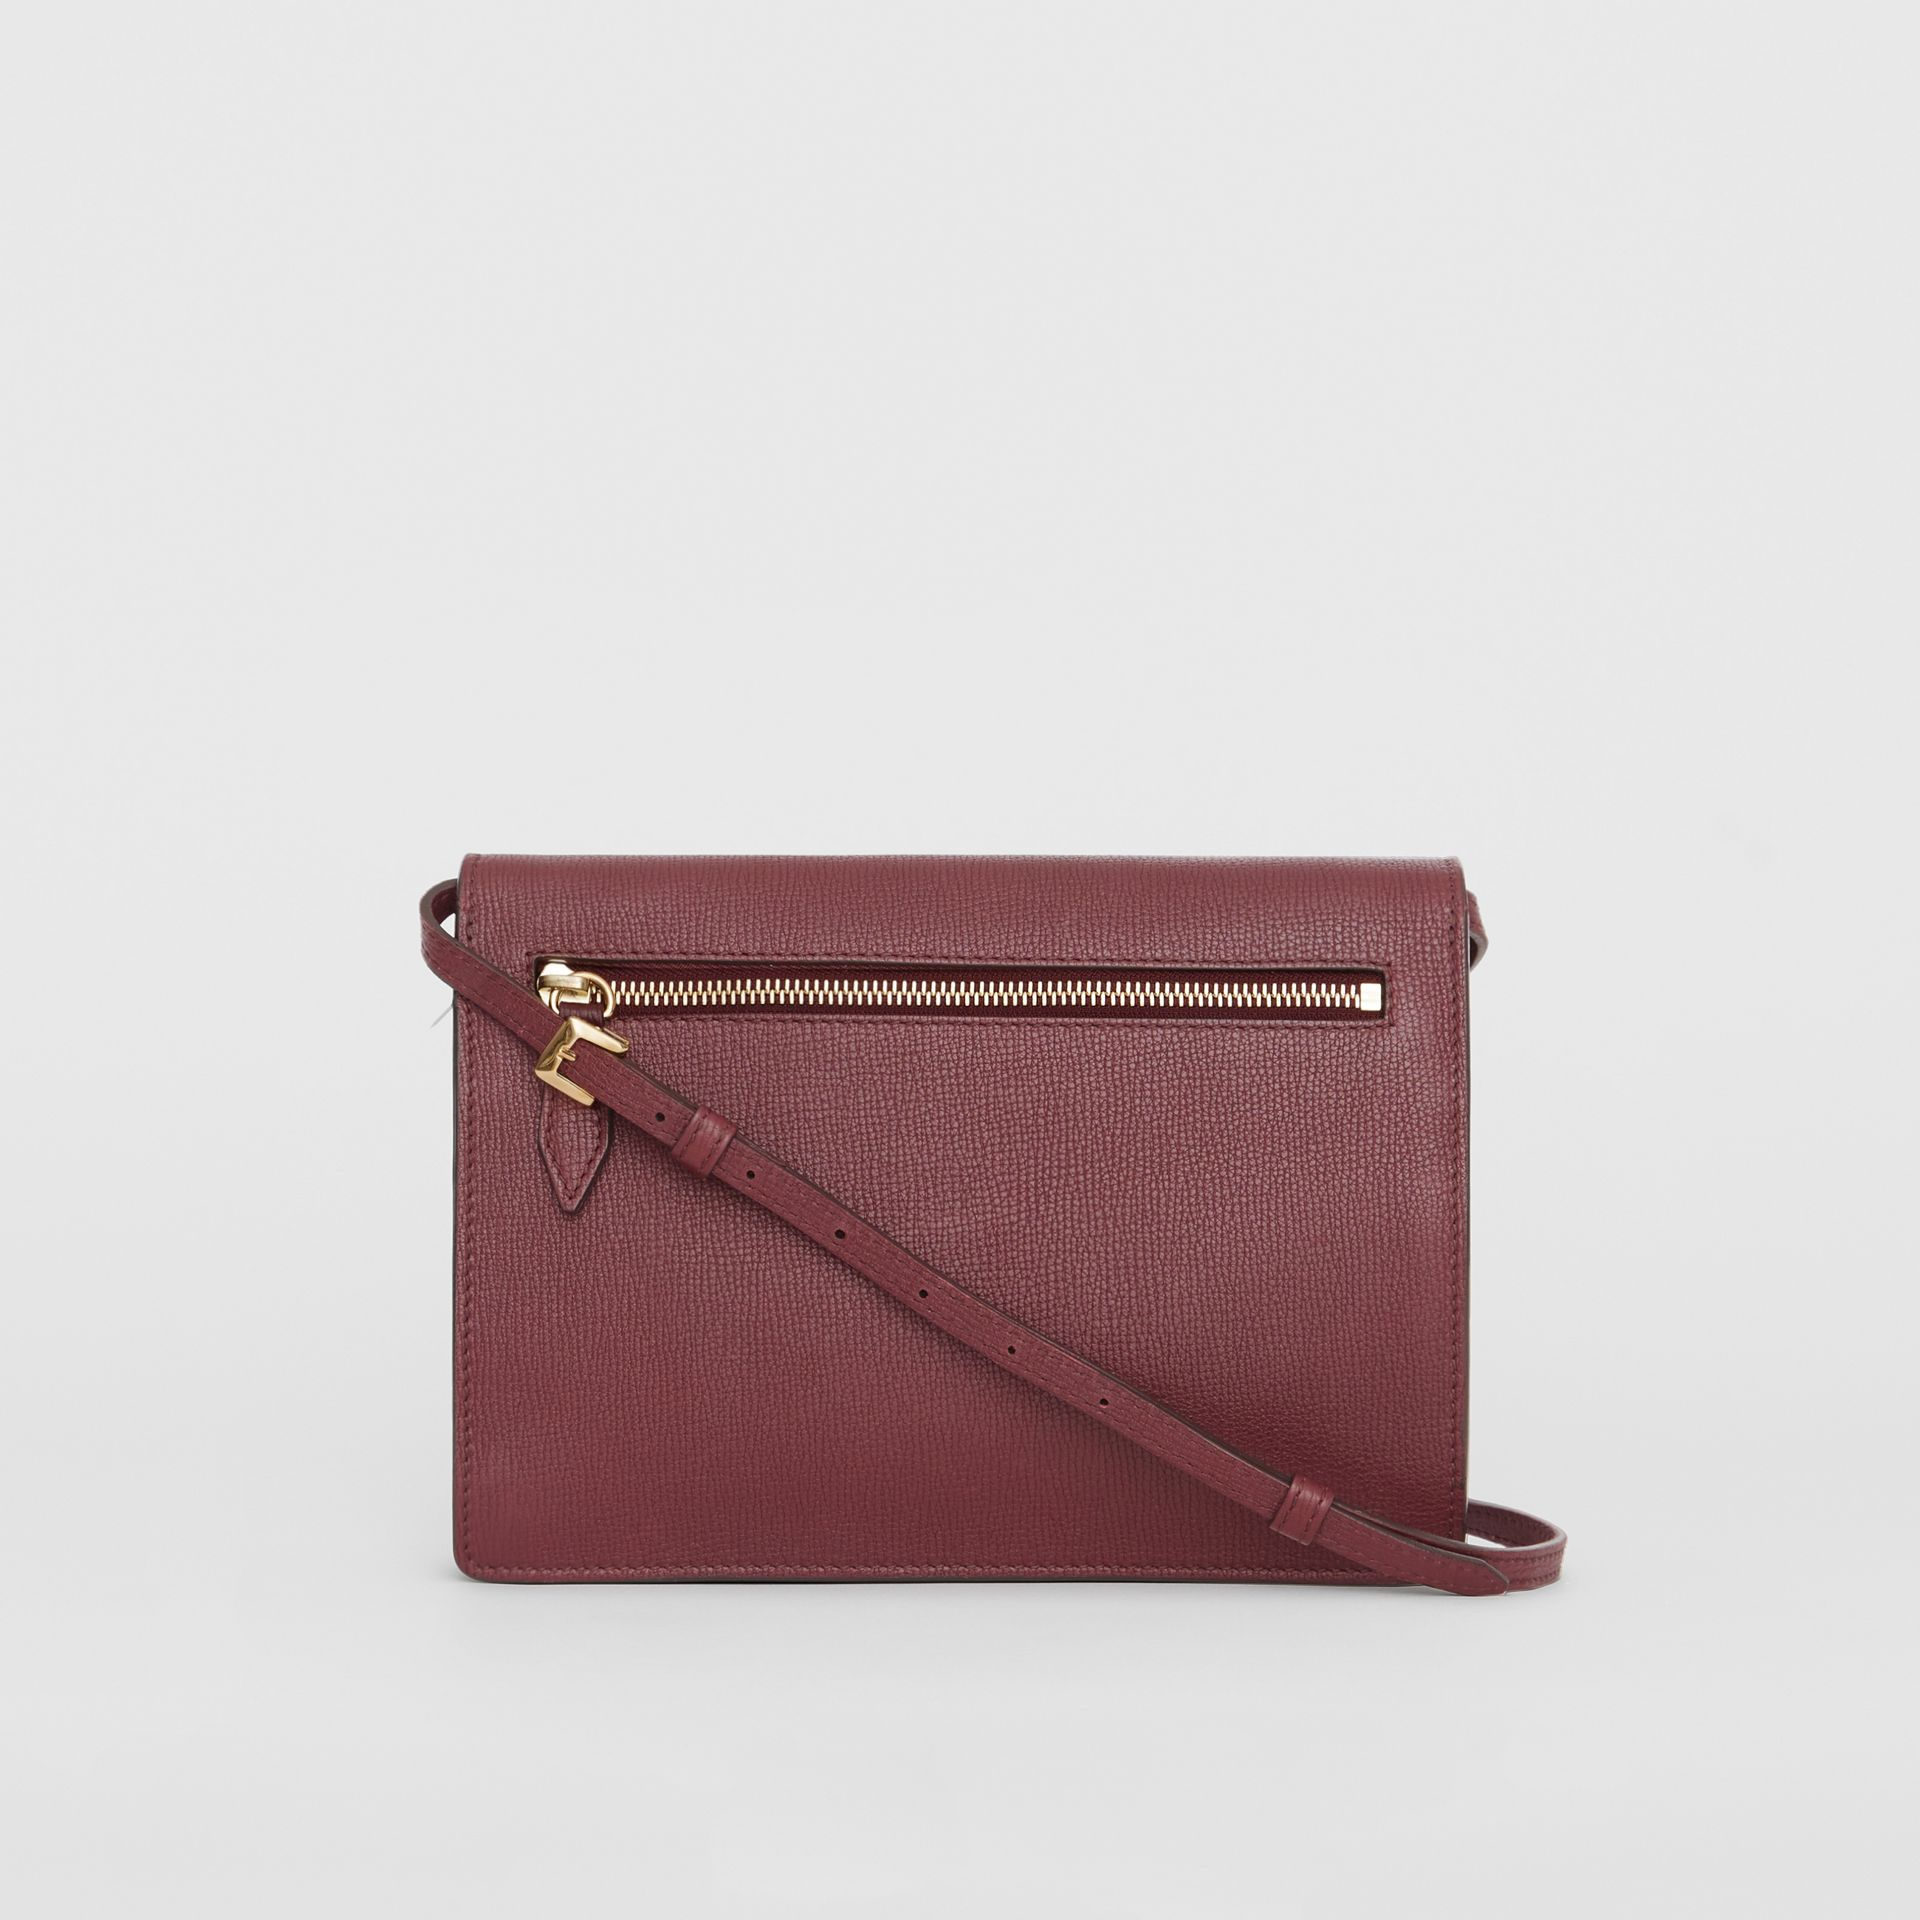 Small Leather and House Check Crossbody Bag in Mahogany Red - Women | Burberry Singapore - gallery image 7